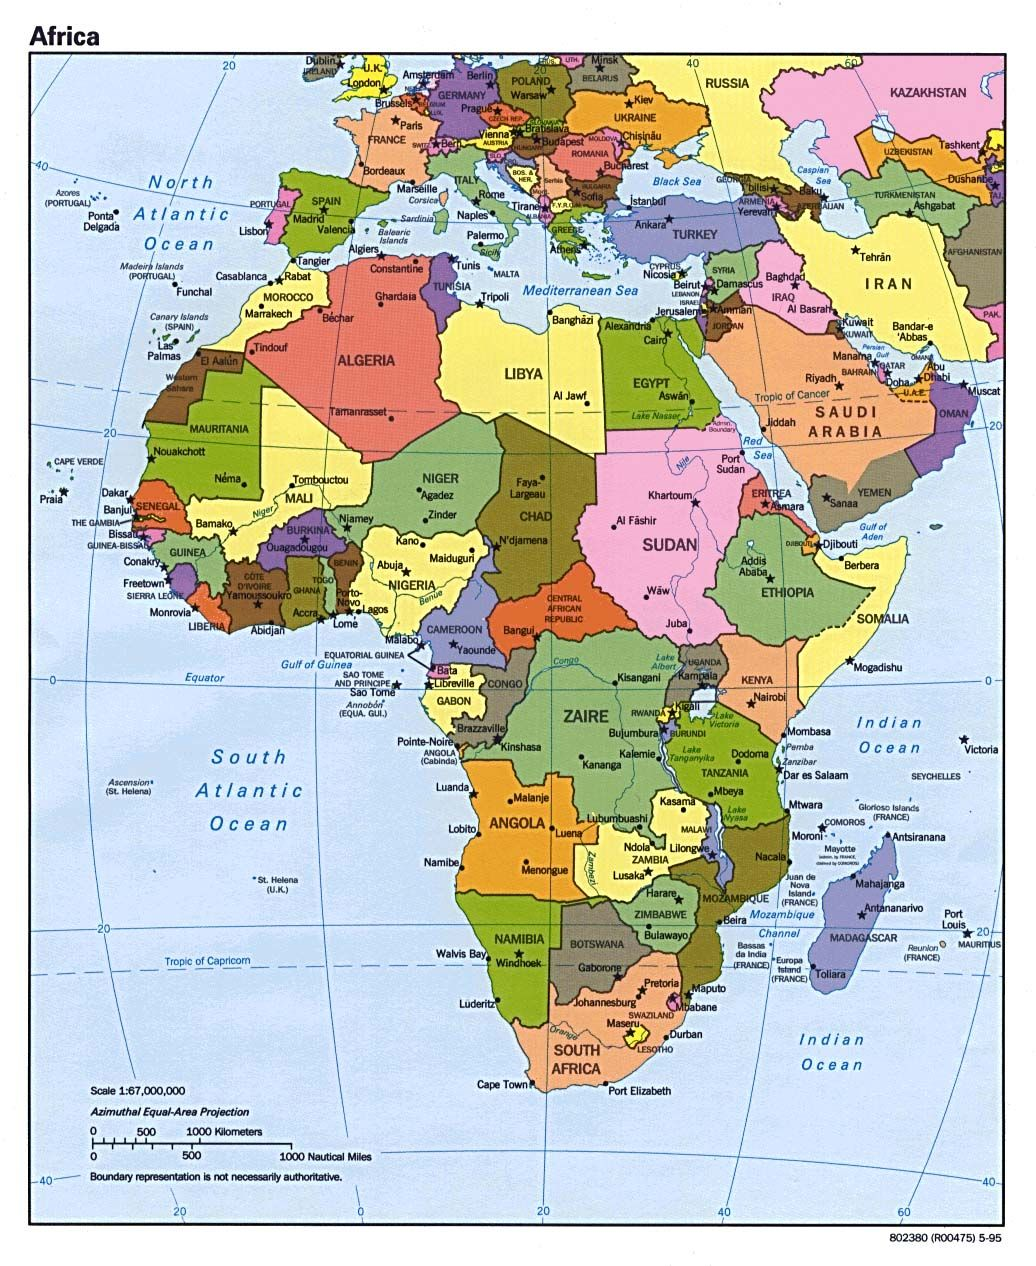 Free Printable Maps Political Map Of Africa Africa Map Political Map Europe Map